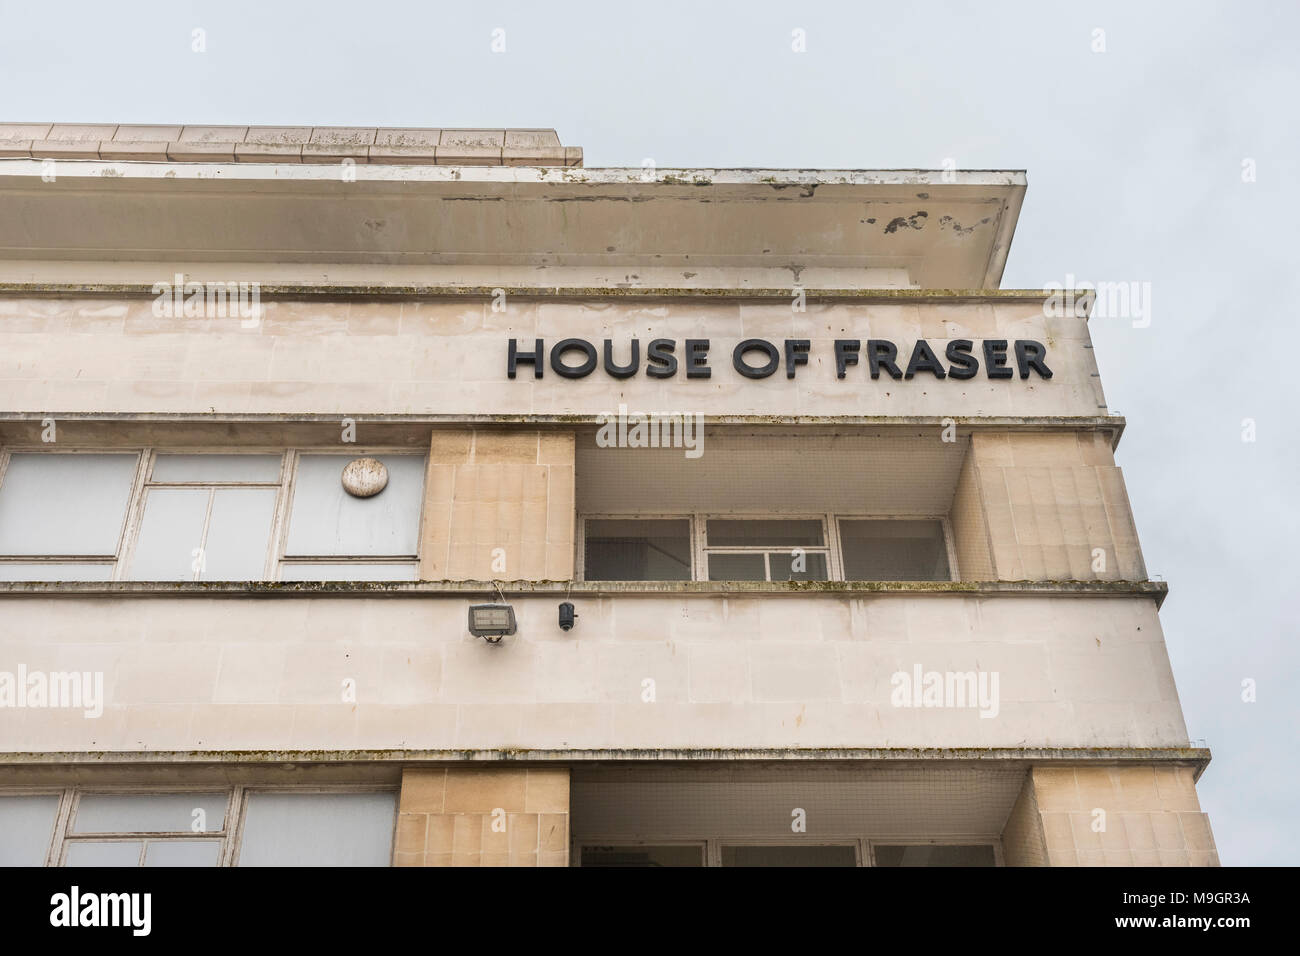 House of Fraser Plymouth, closing. Metaphor struggling retailers, high street squeeze, House of Fraser shop closures, high street spending drop Stock Photo